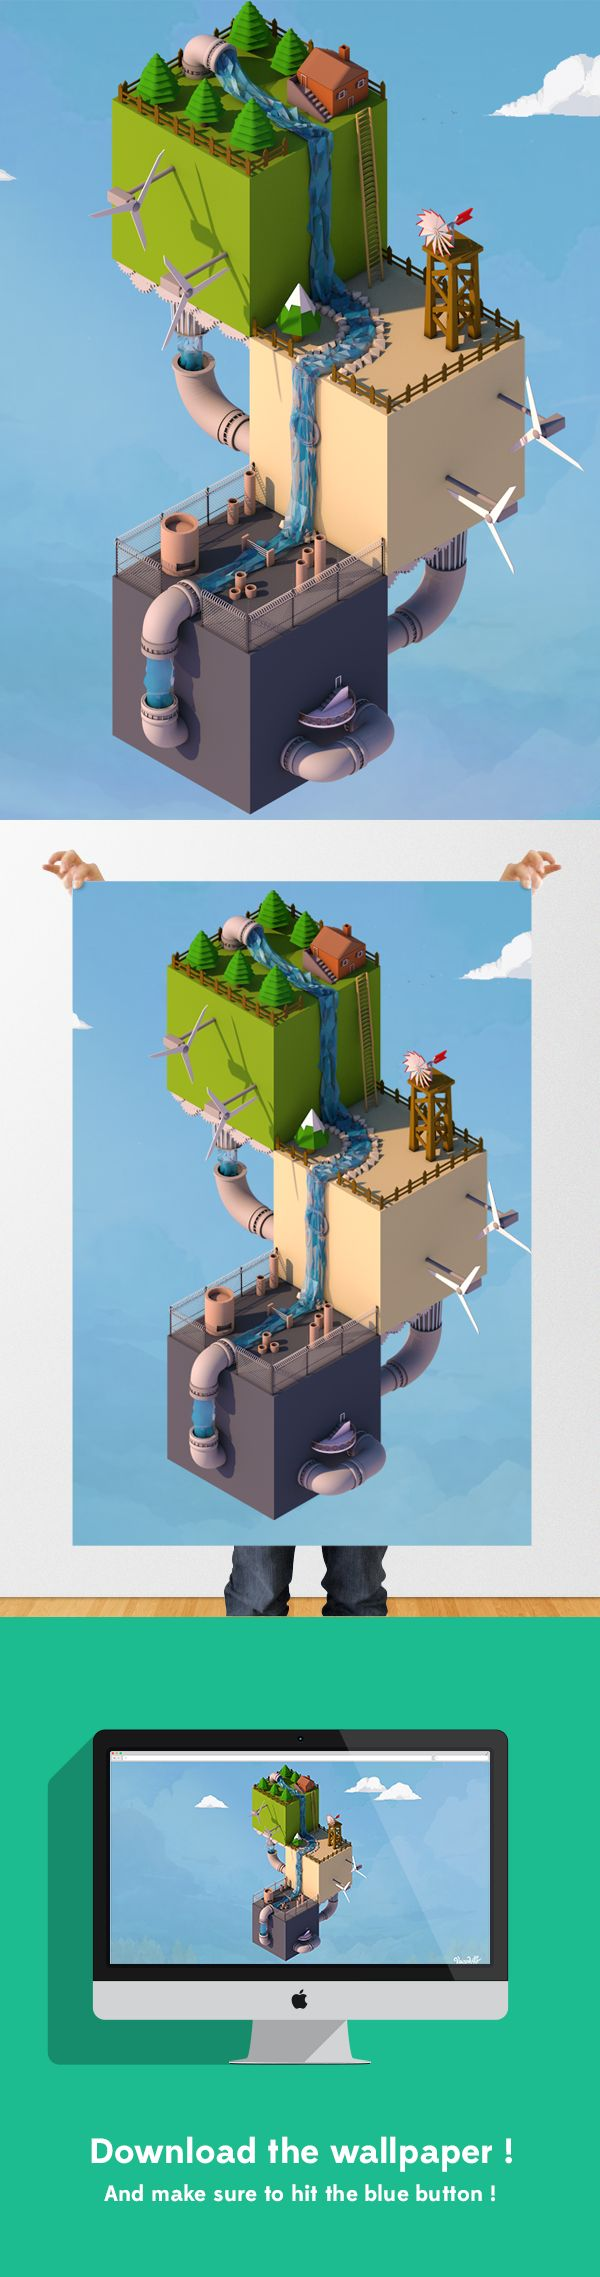 Isometric Low Poly World by Kiril Climson, via Behance